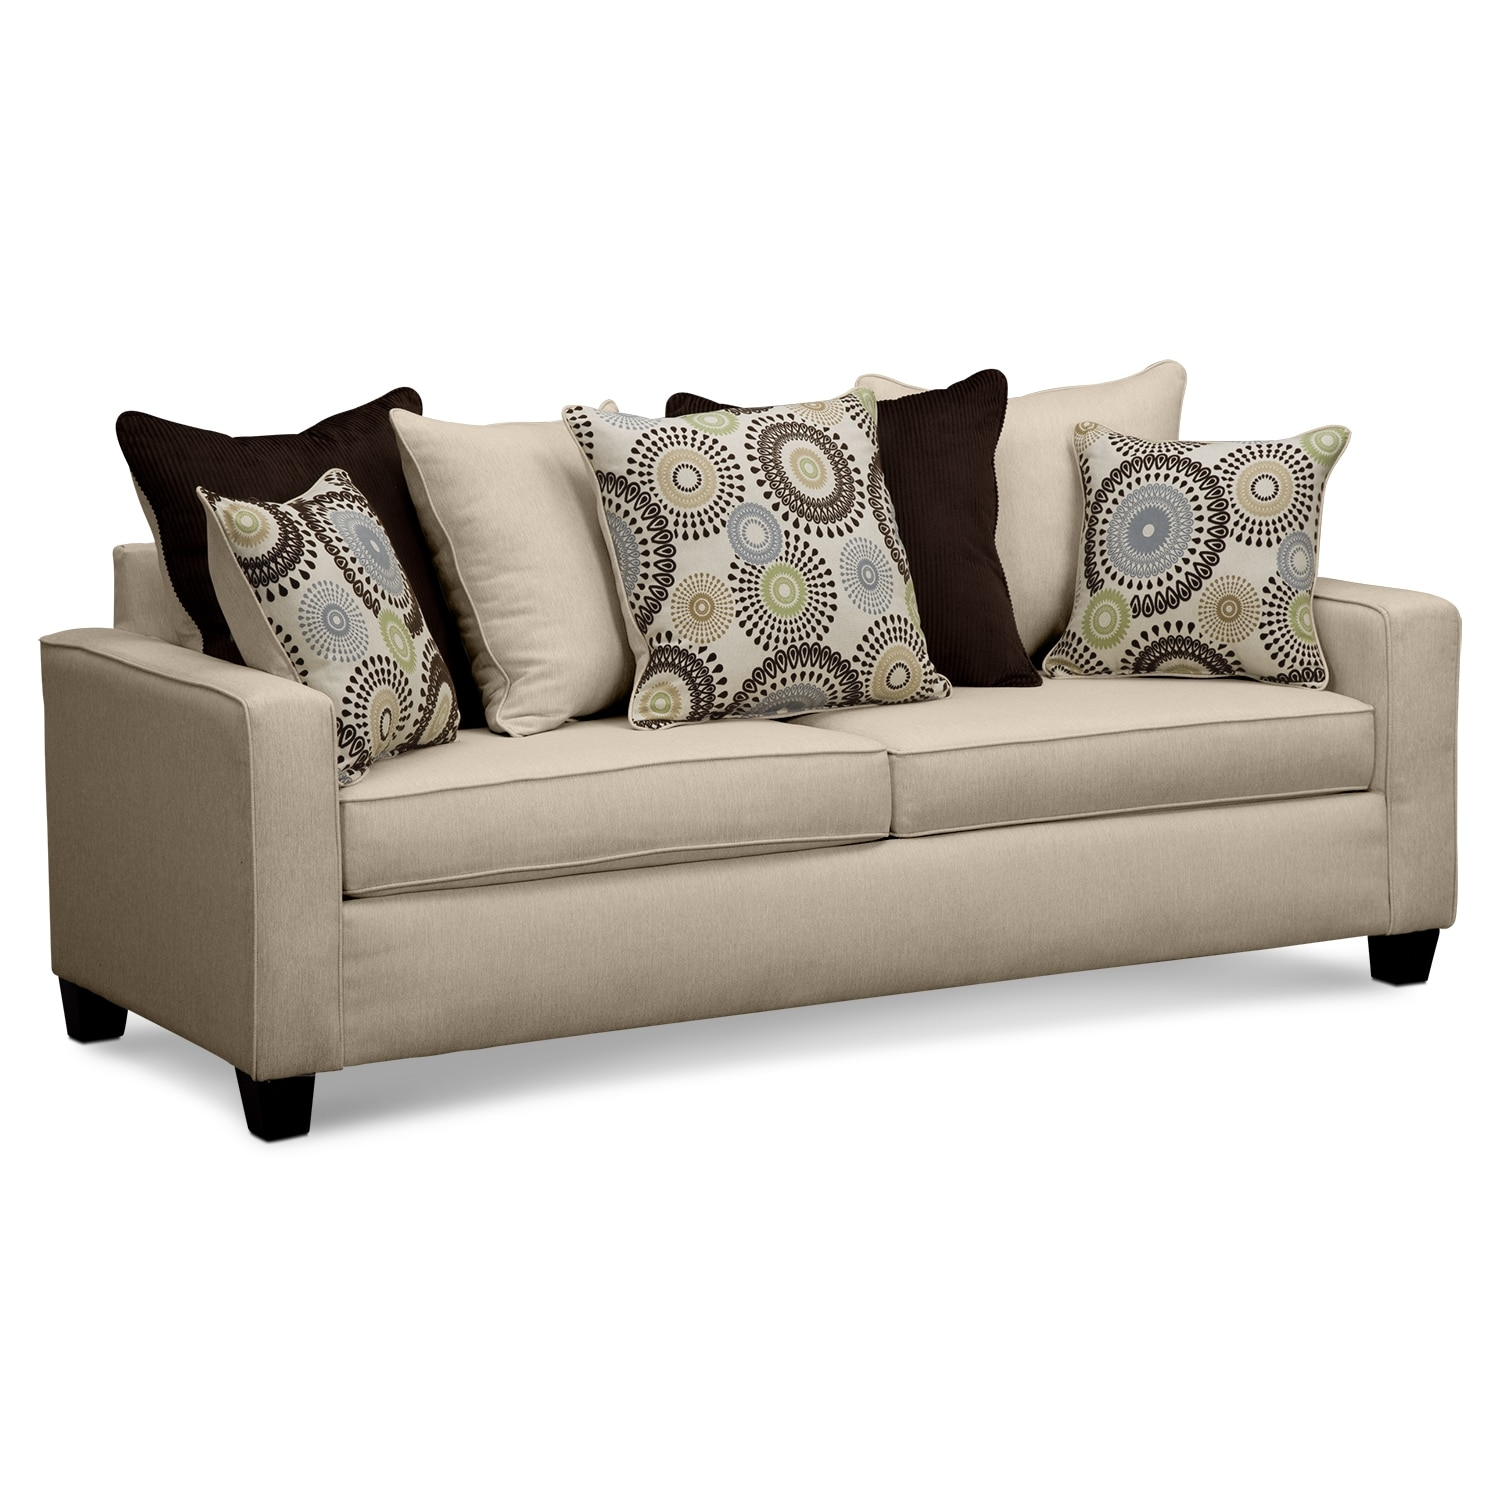 City Furniture Fabric Sectional Sofas Vancouver Loccie Better